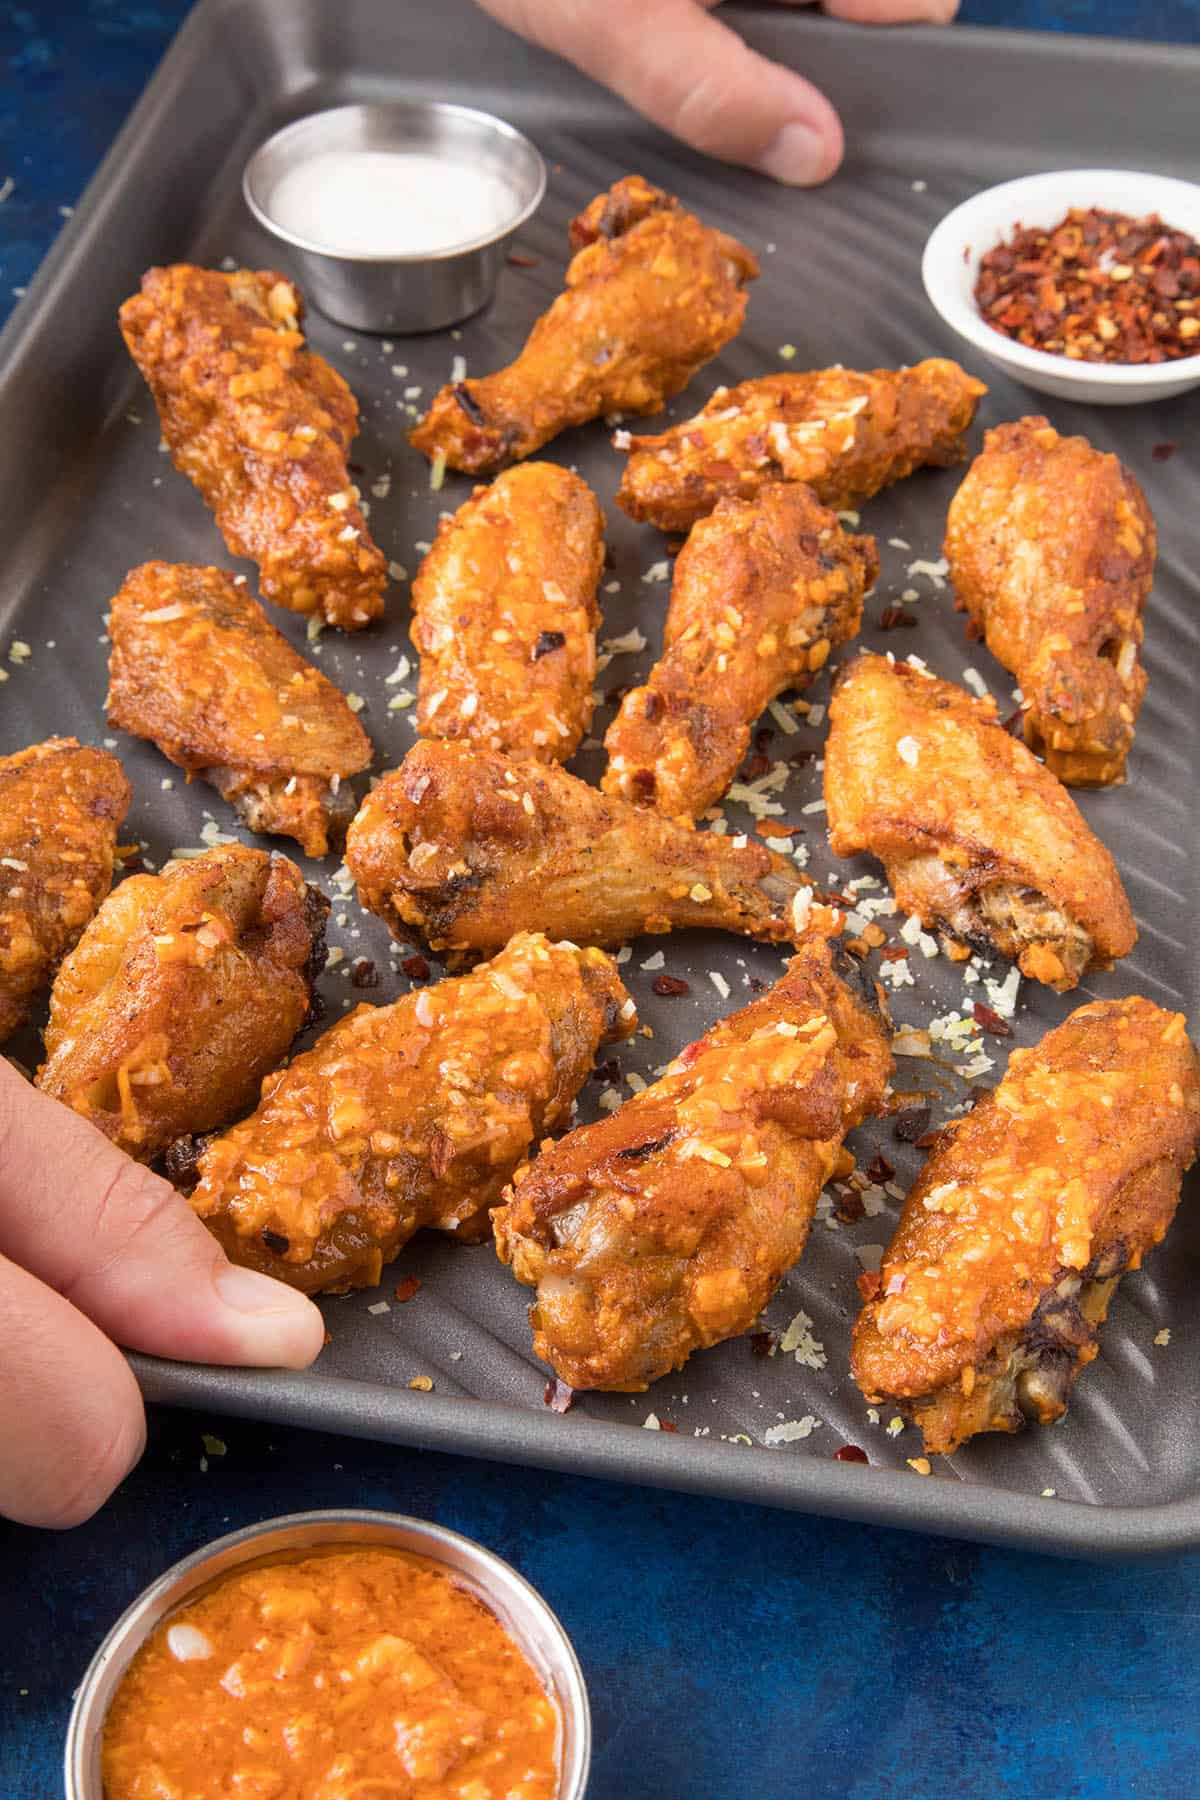 Serving up our Garlic Parmesan Chicken Wings